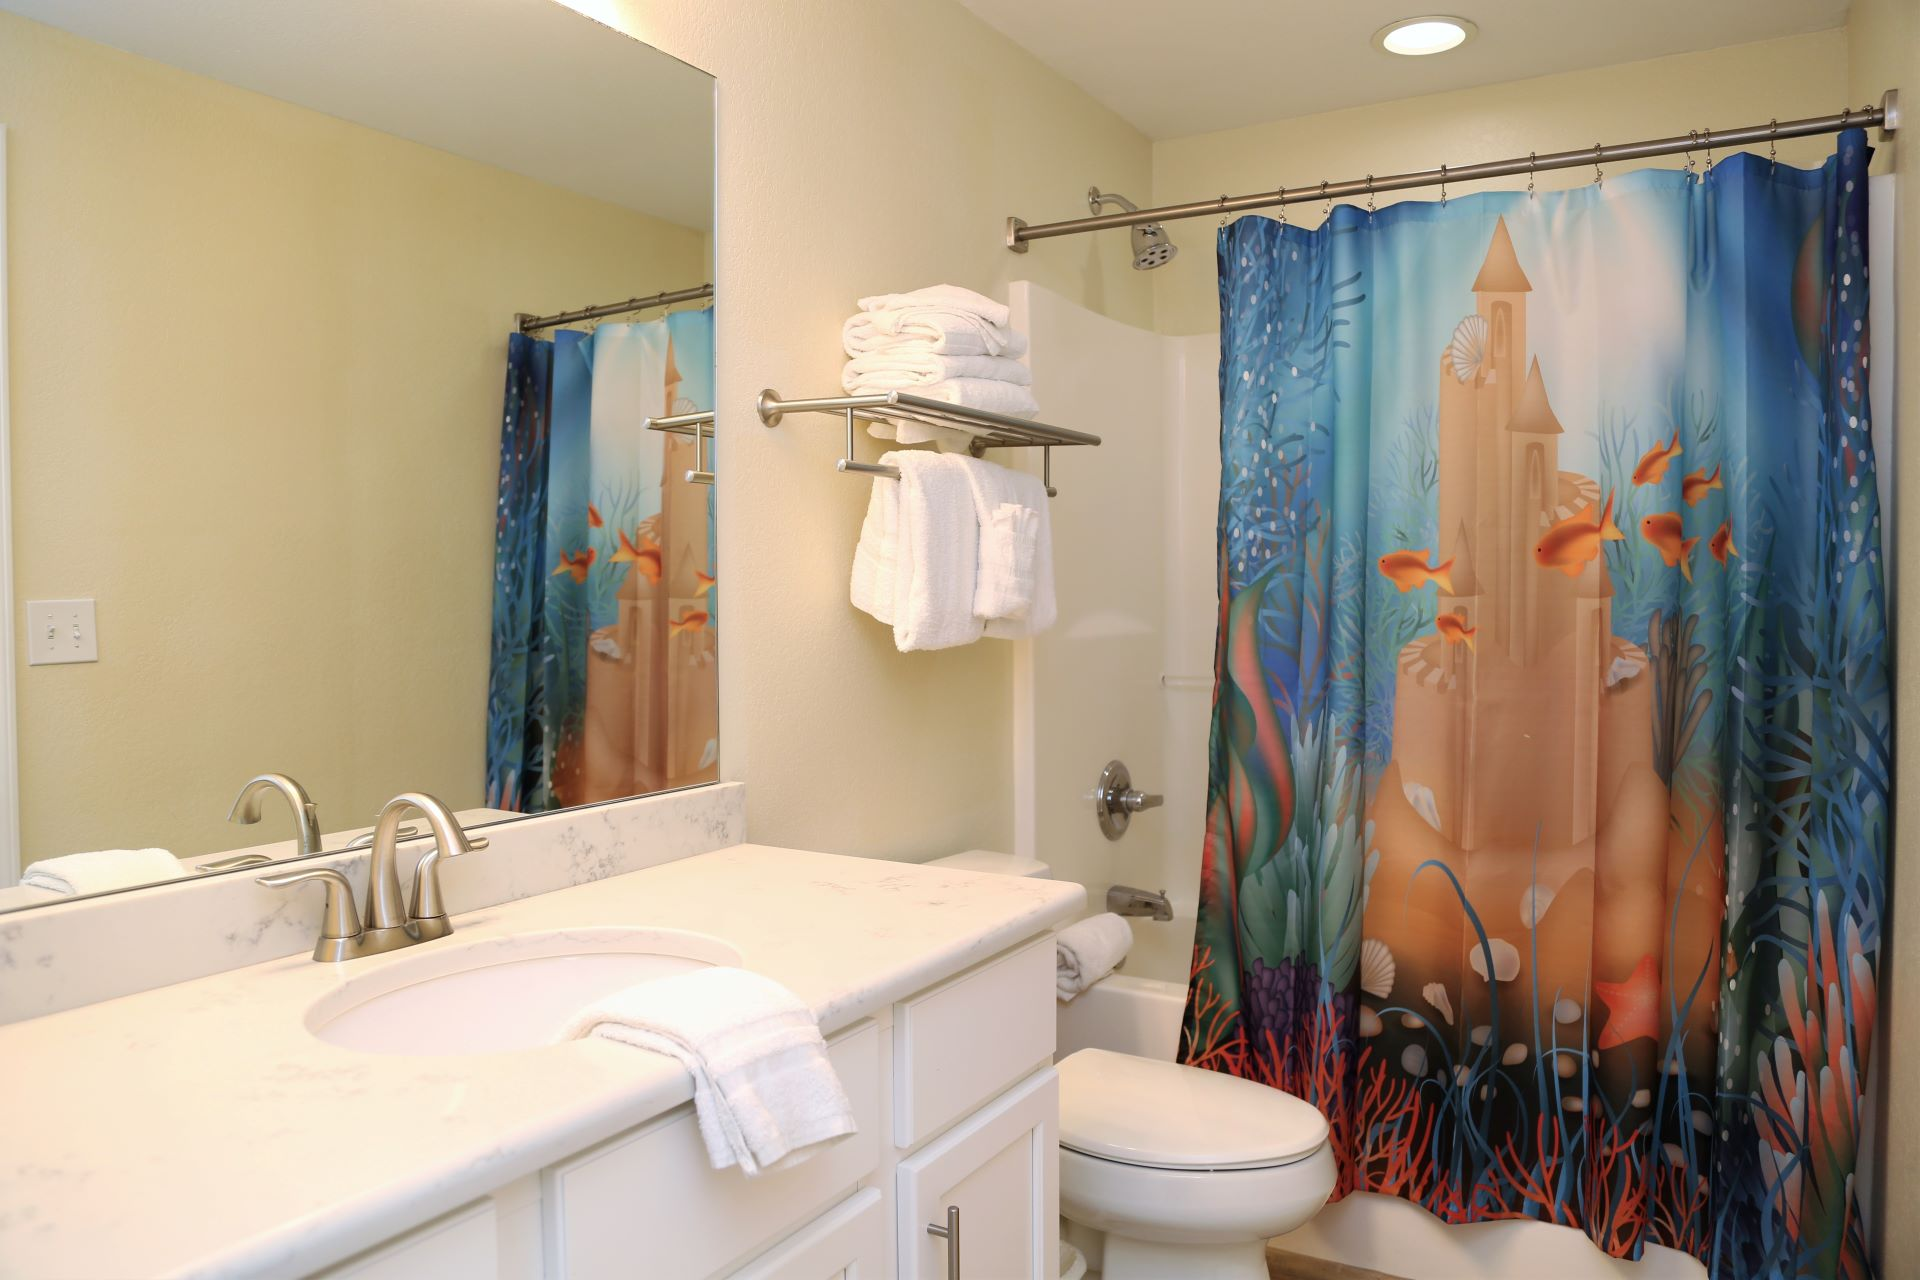 The second bathroom with shower/tub combo is accessible from